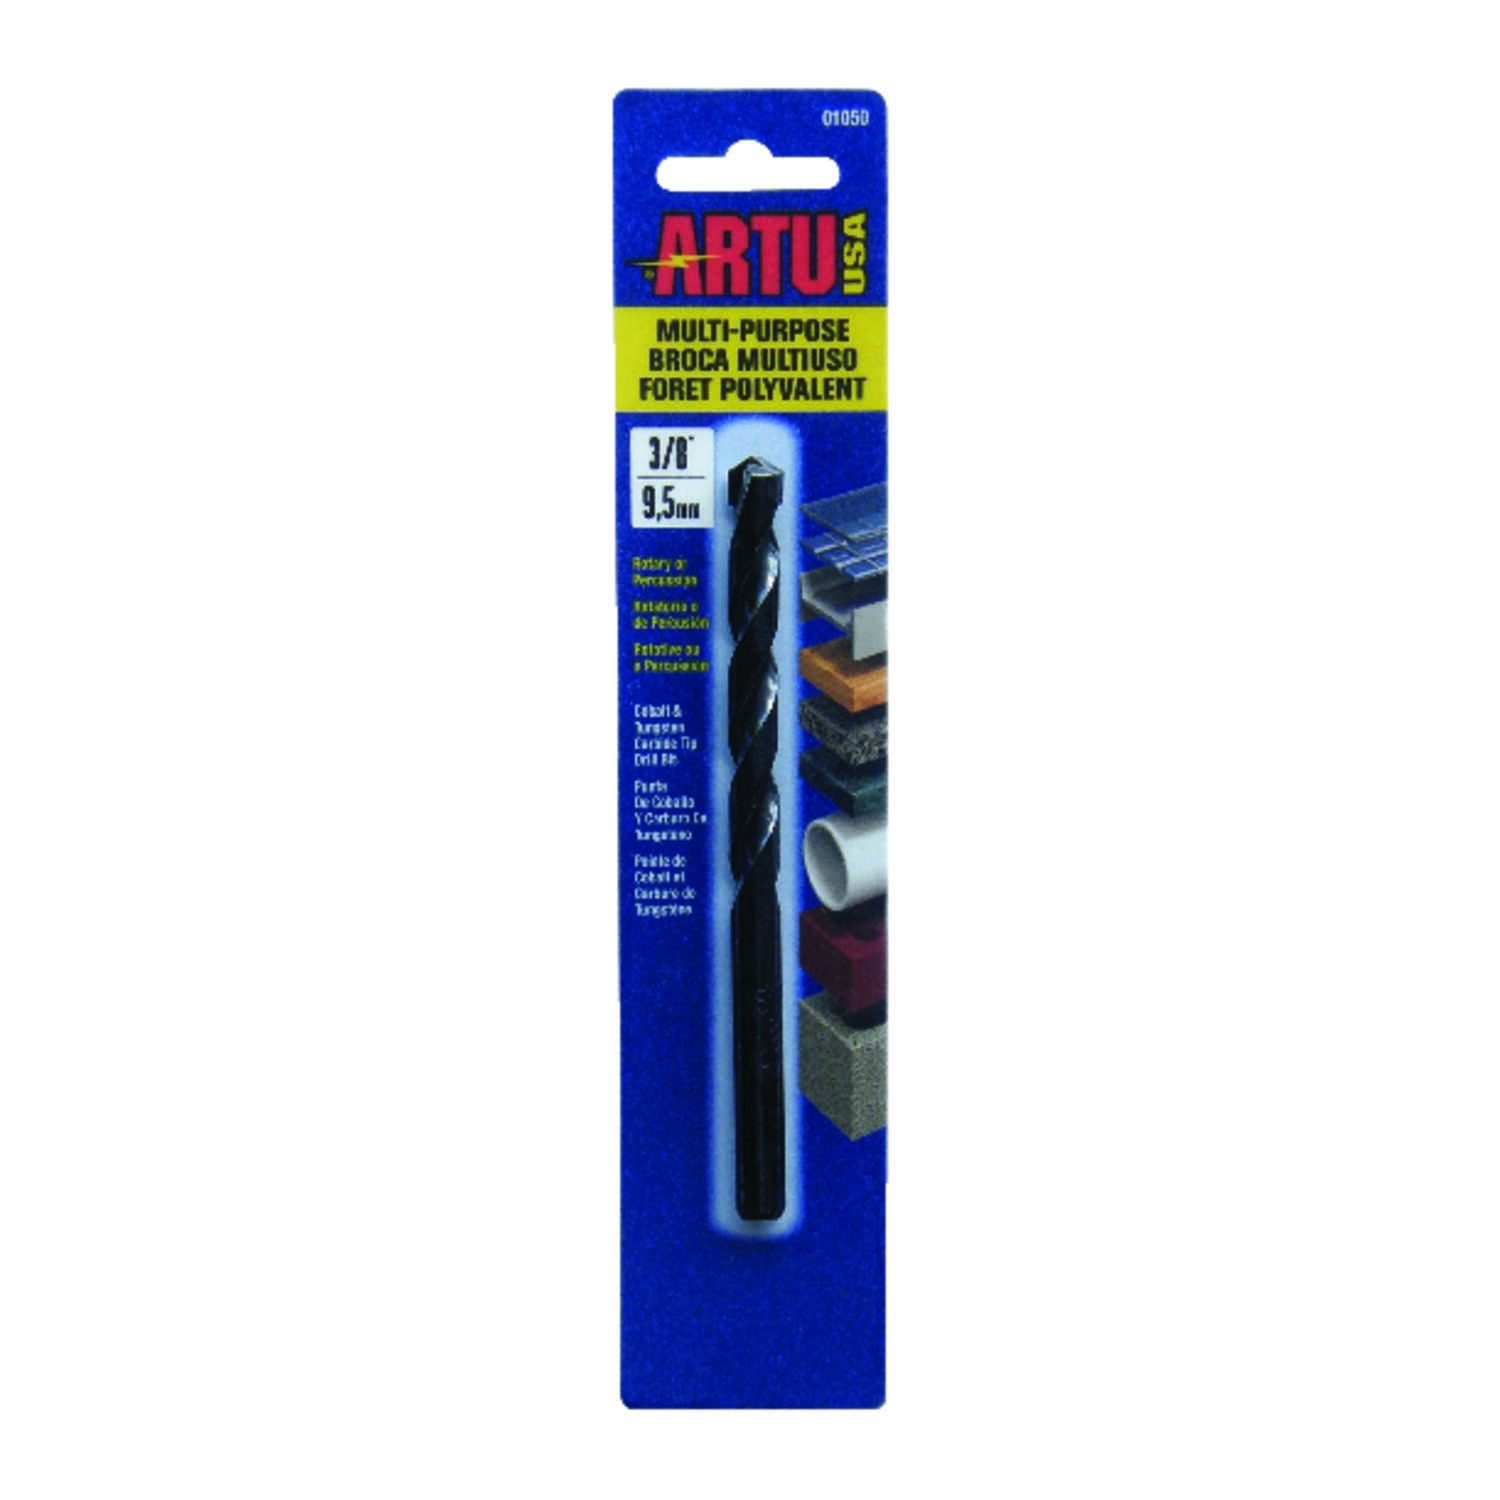 ARTU  3/8 in. Dia. x 5-1/4 in. L Tungsten Carbide Tipped  General Purpose Drill Bit  3/8 in. Straigh